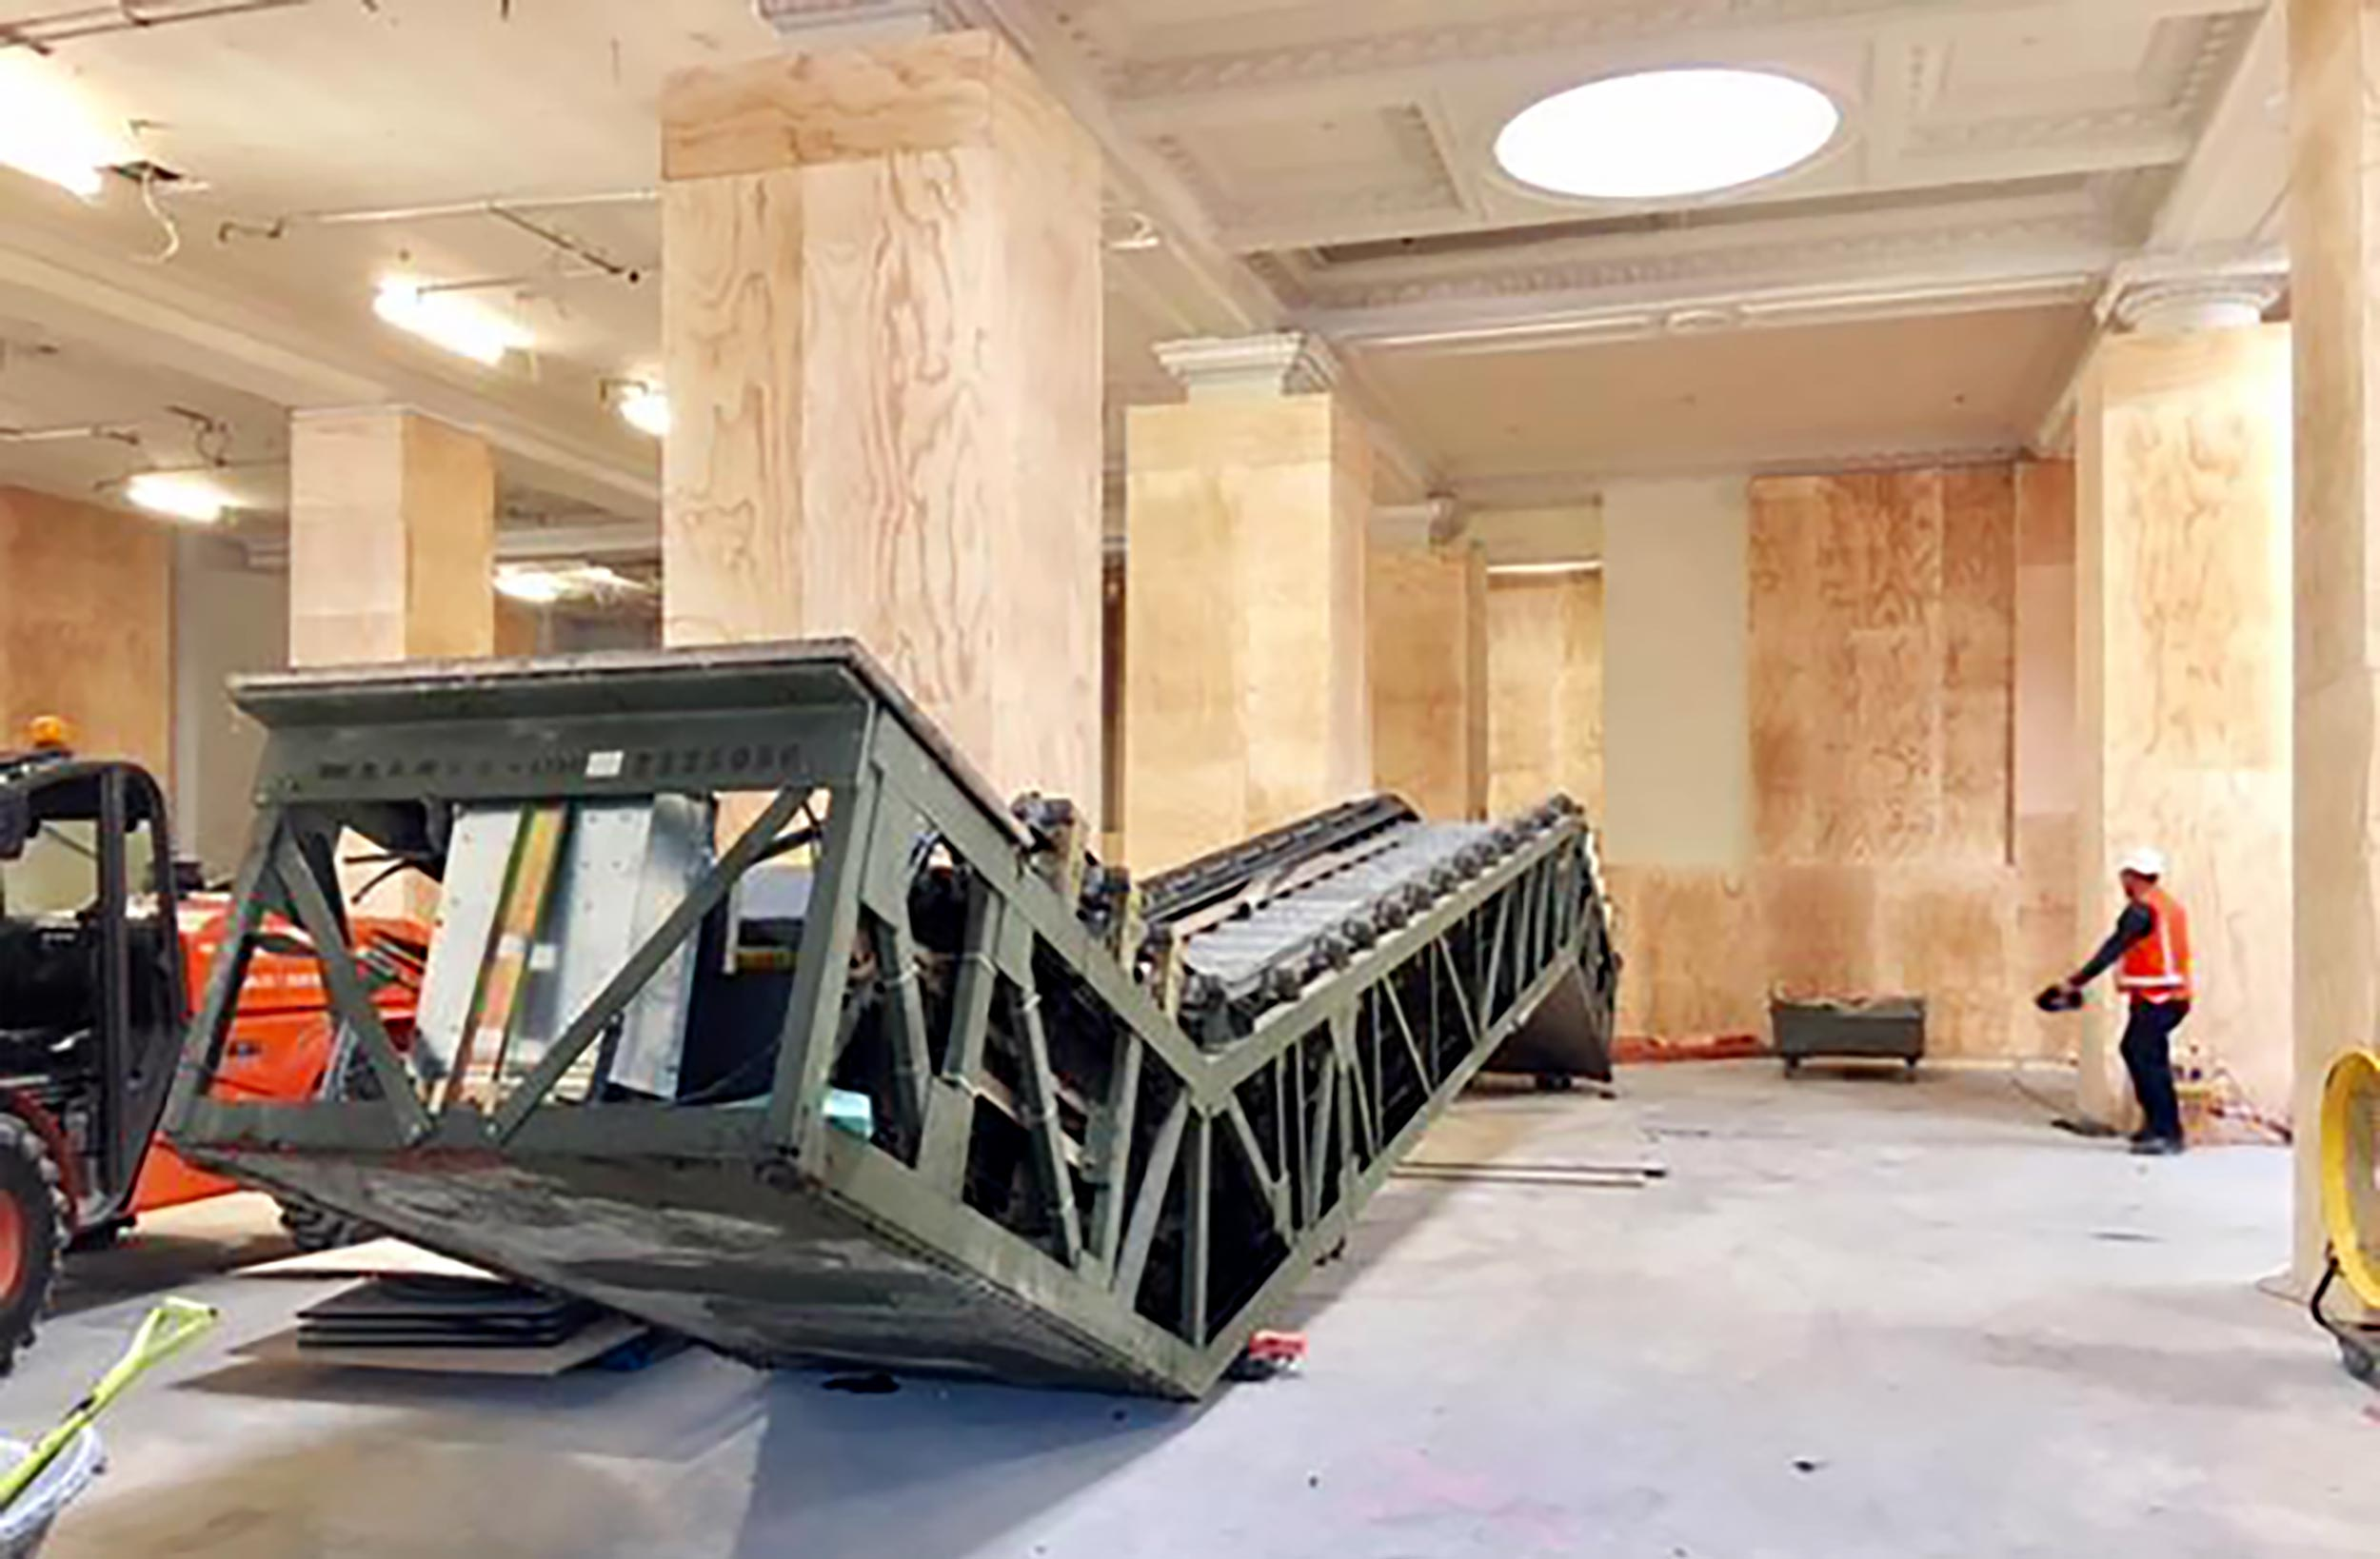 The old escalators in the original Britomart train station. These have been removed as part of the CRL construction.